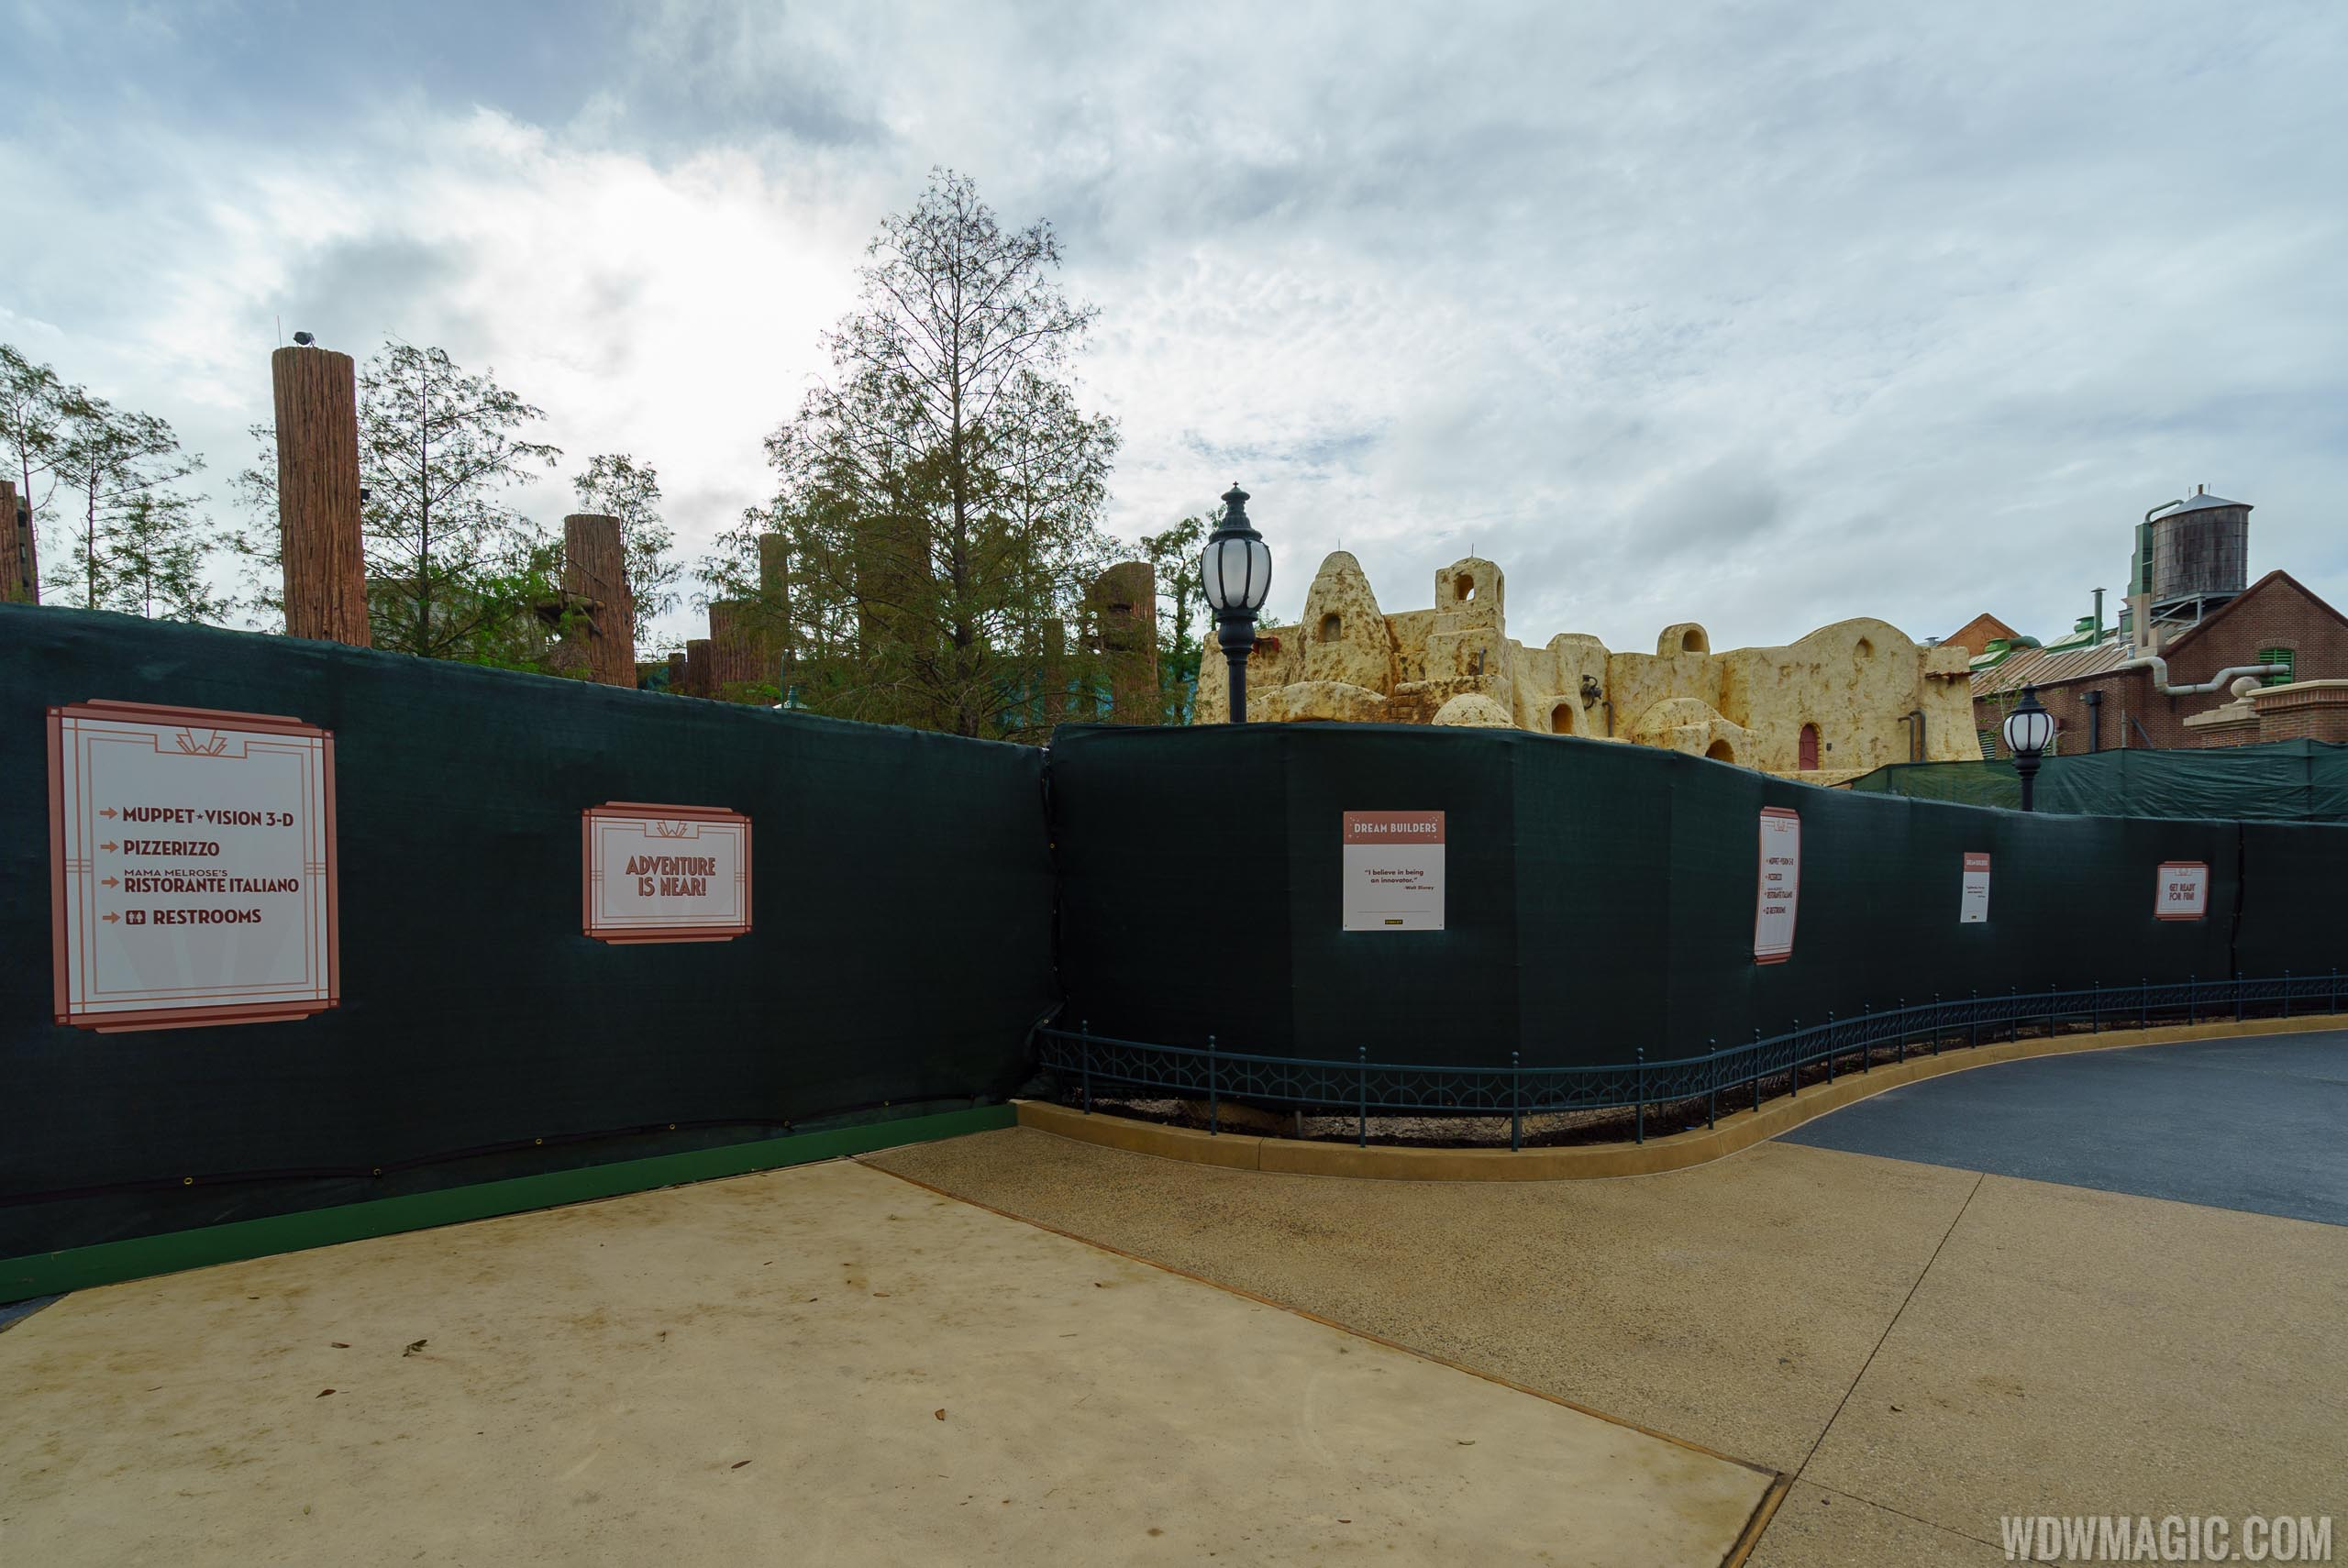 Construction around Entrance to Star Wars Galaxy's Edge